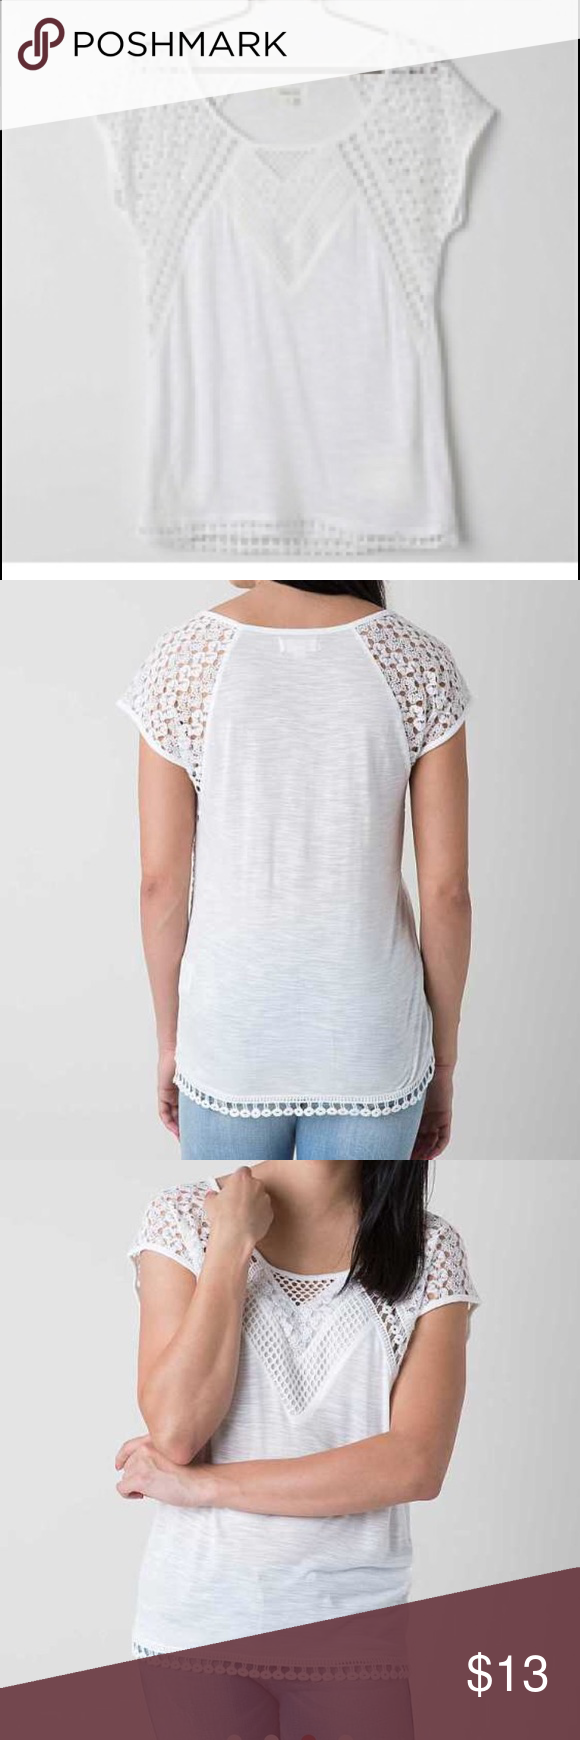 """Taylor and Sage lace Crocheted top size large Crocheted appliqué on hemline. Crocheted along fabric top length 25  1/4"""" bust 21"""" 100% Rayon. Crocheted is Polyester. Some signs of wear Taylor and Sage Tops Tees - Short Sleeve"""